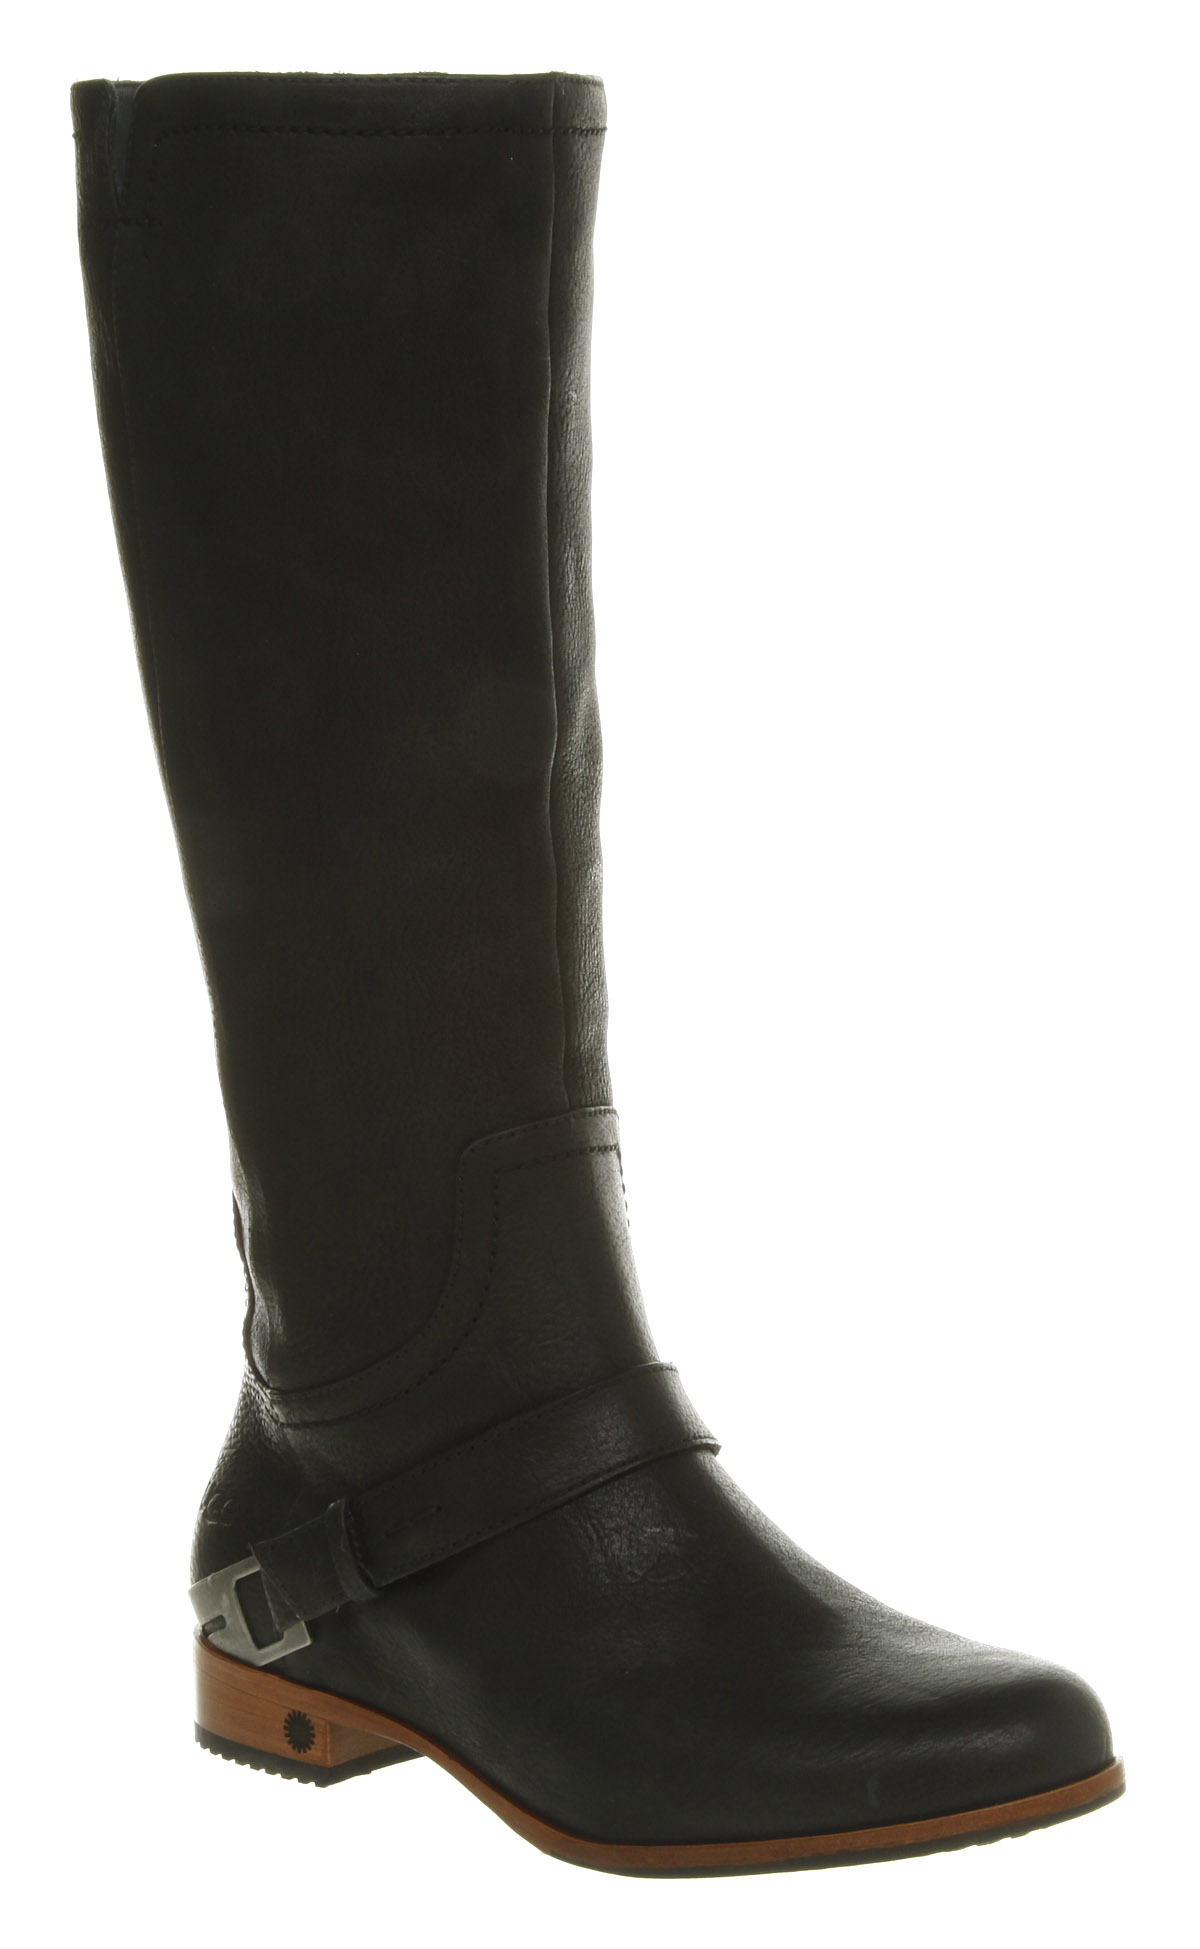 ugg australia channing knee boot black leather